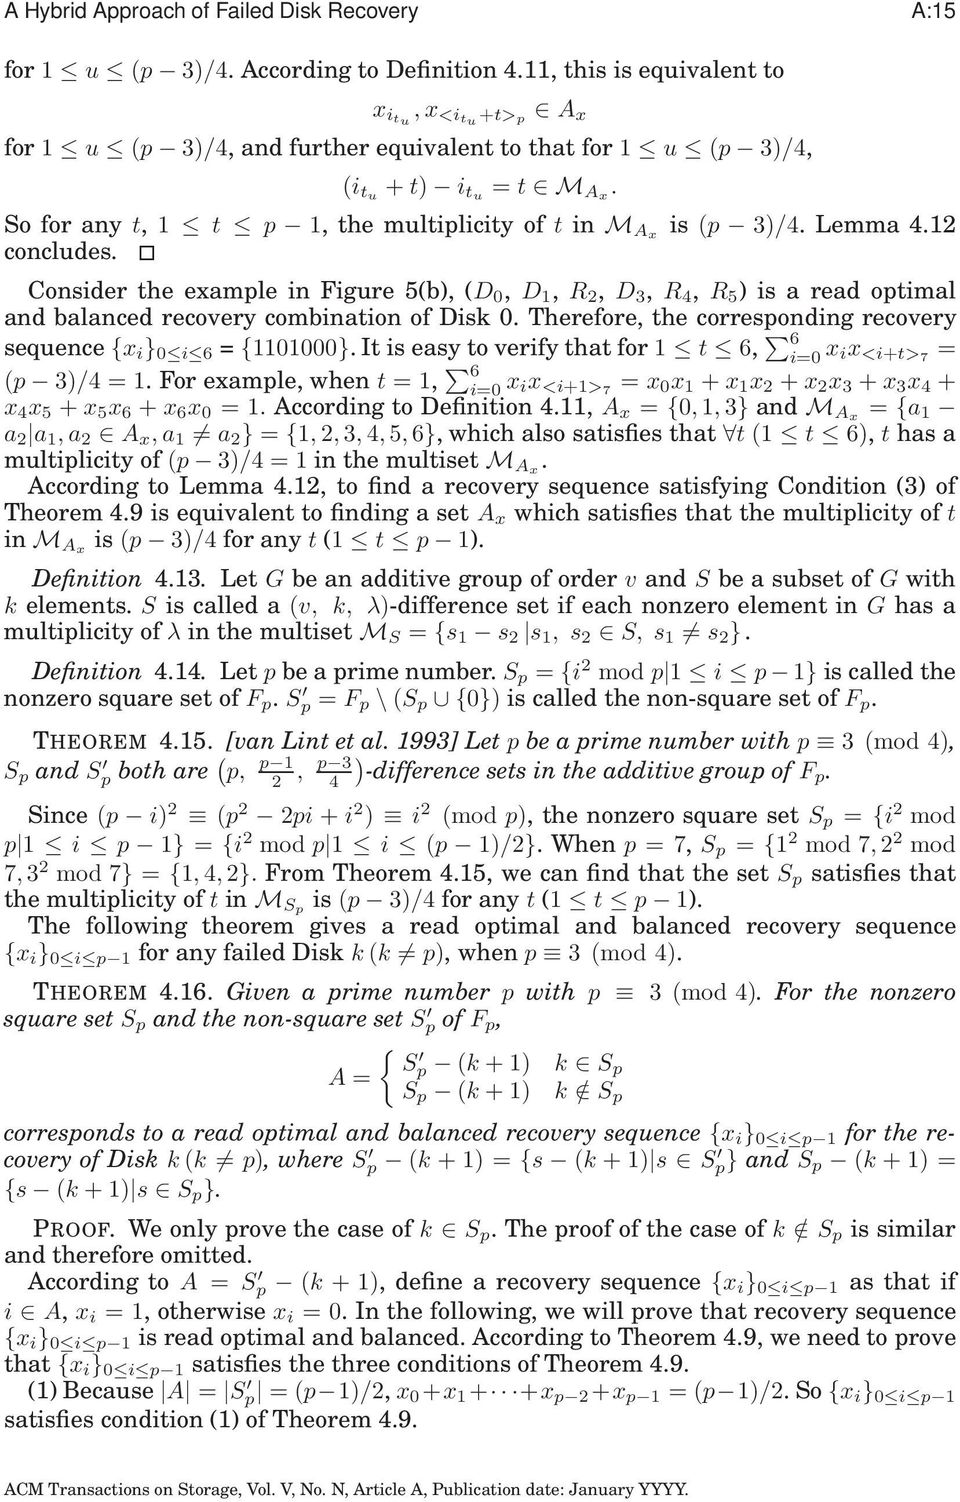 So for any t, 1 t p 1, the multiplicity of t in M Ax is (p 3)/4. Lemma 4.12 concludes.